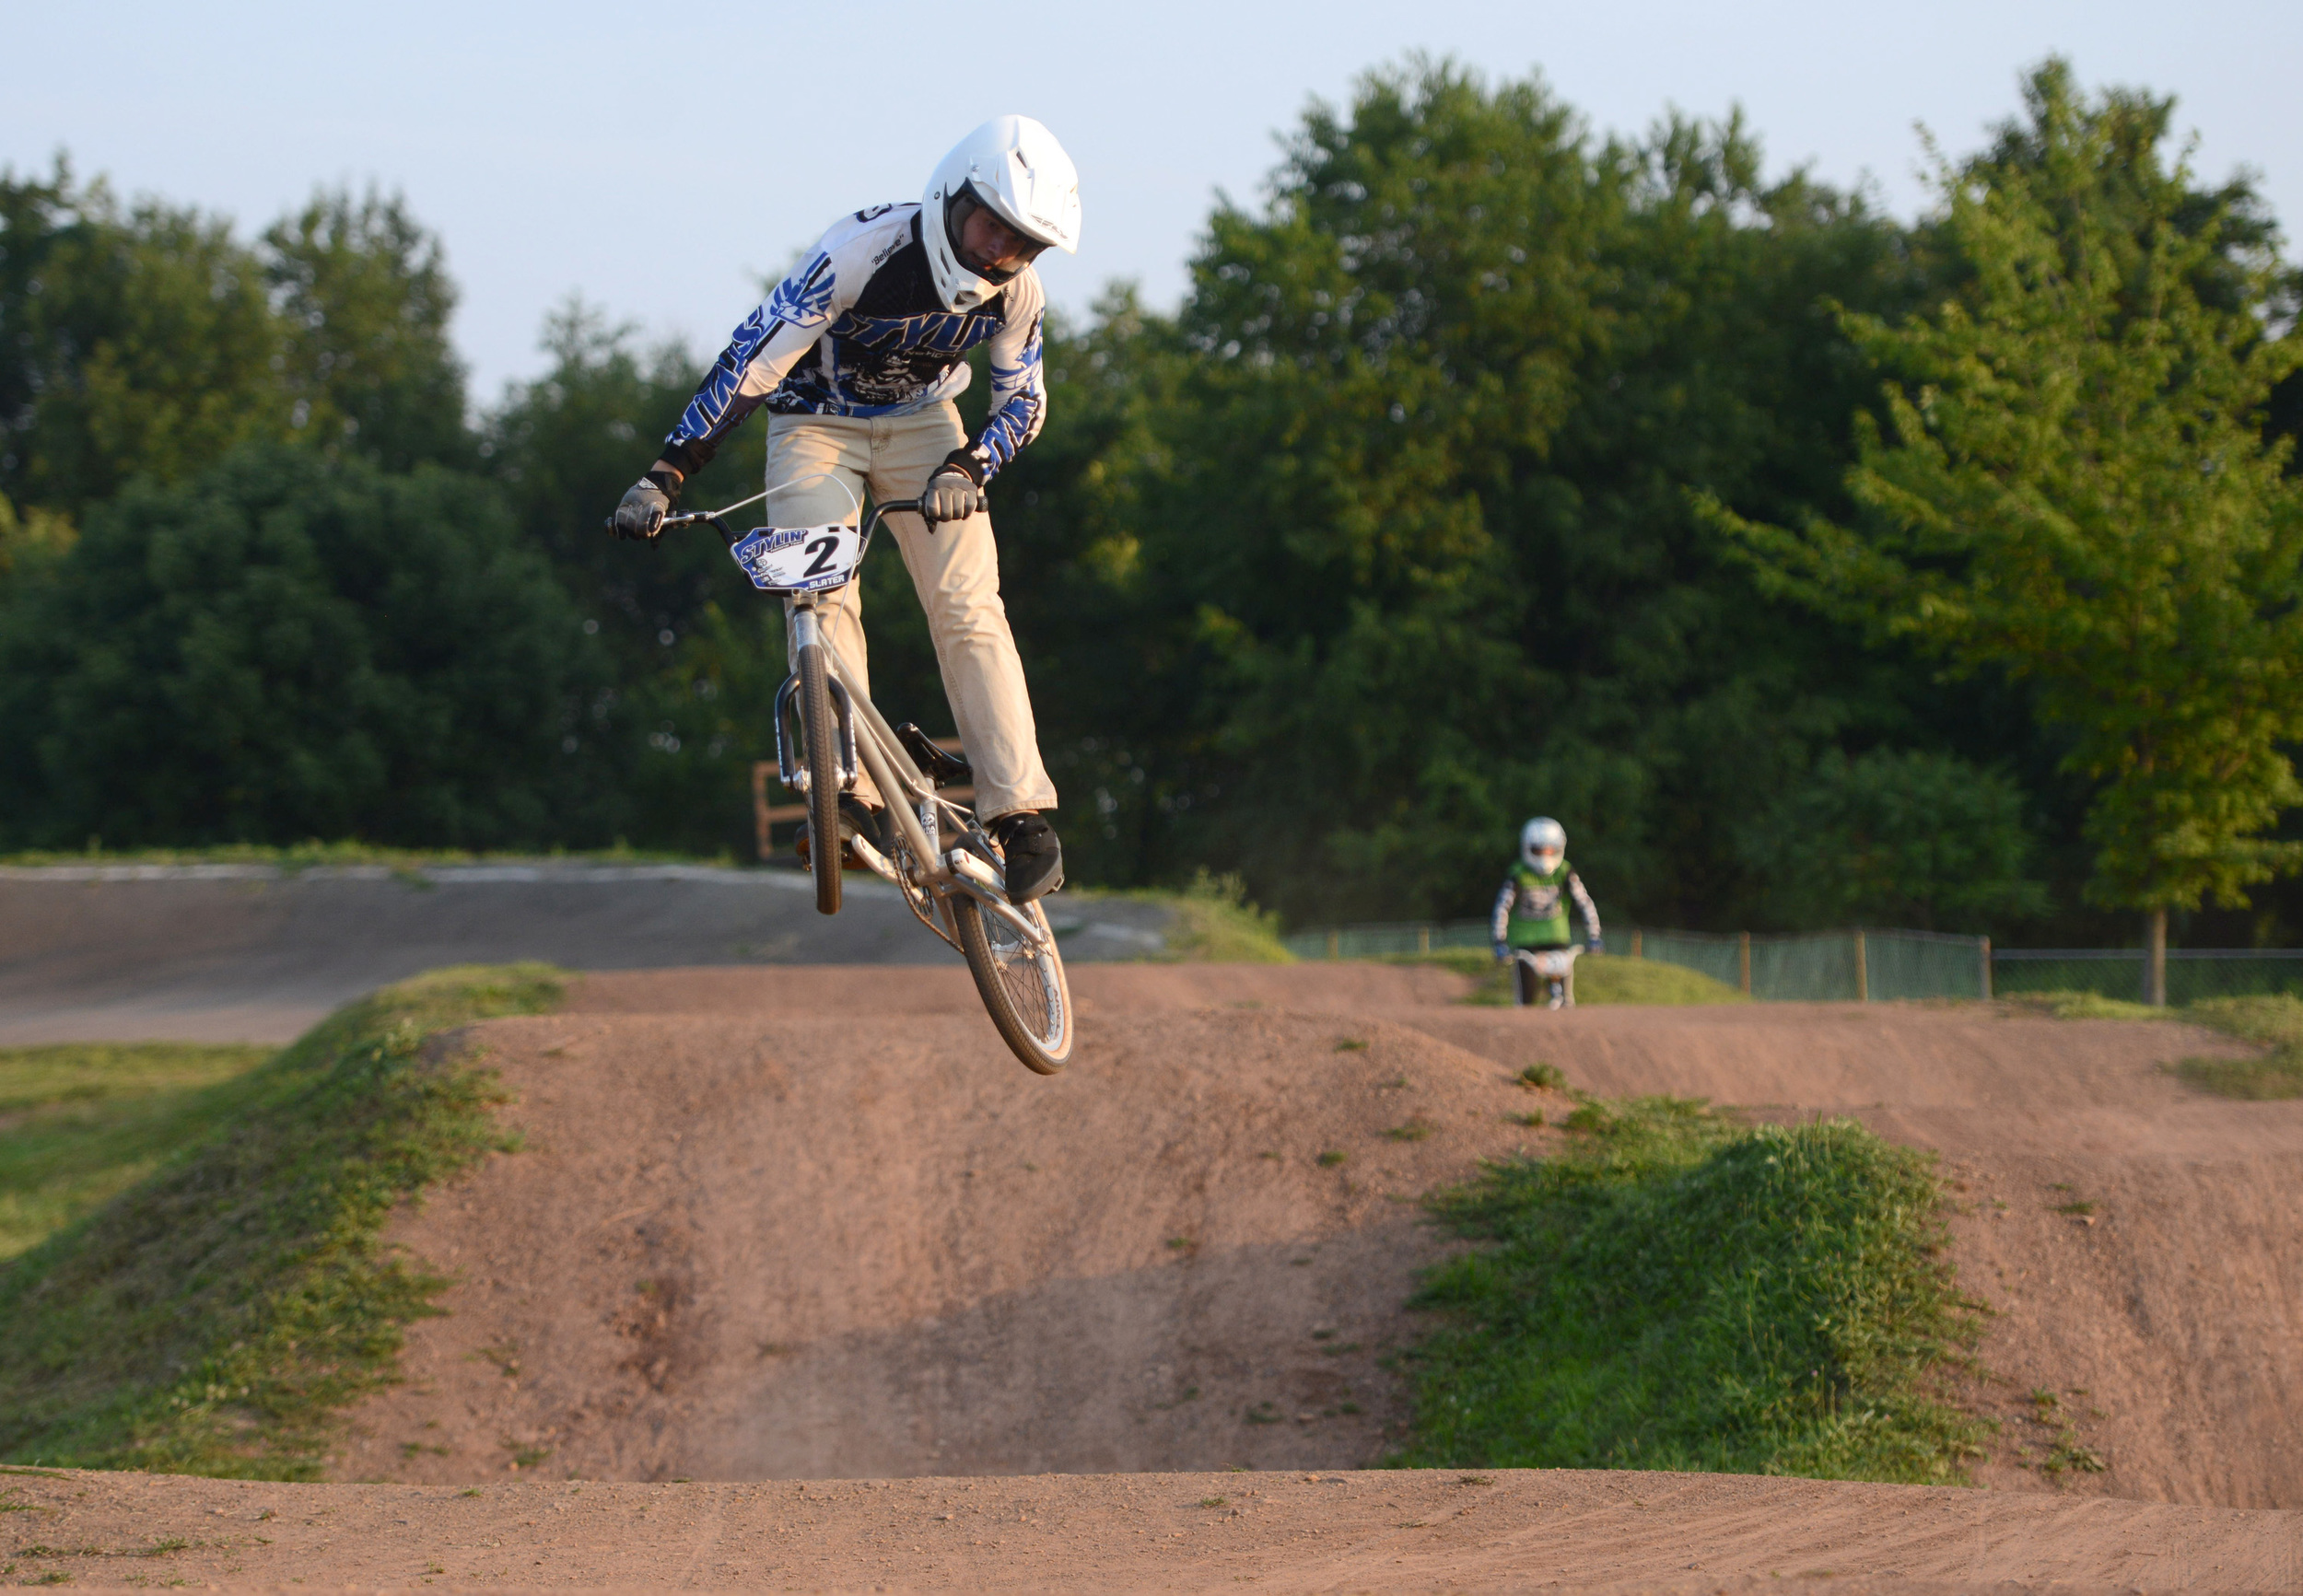 Ean Slater catches some air as he leads his moto at the BMX track in Northmoreland Park in Allegheny Township on Tuesday, July 28, 2015.